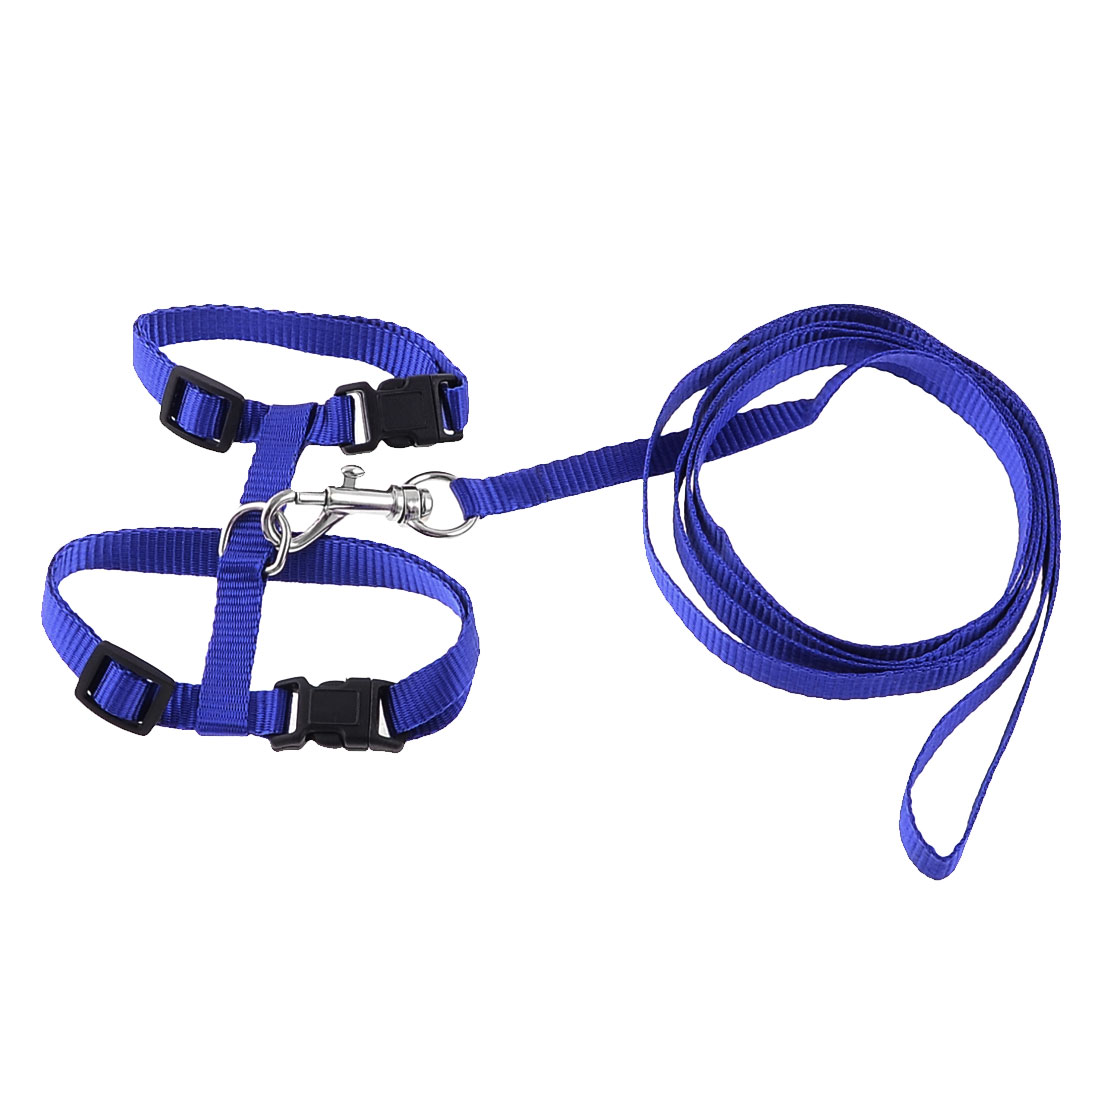 Unique Bargains Nylon Trigger Hook Adjustable Pet Puppy Dog Harness Vest Set Size XS w Leash